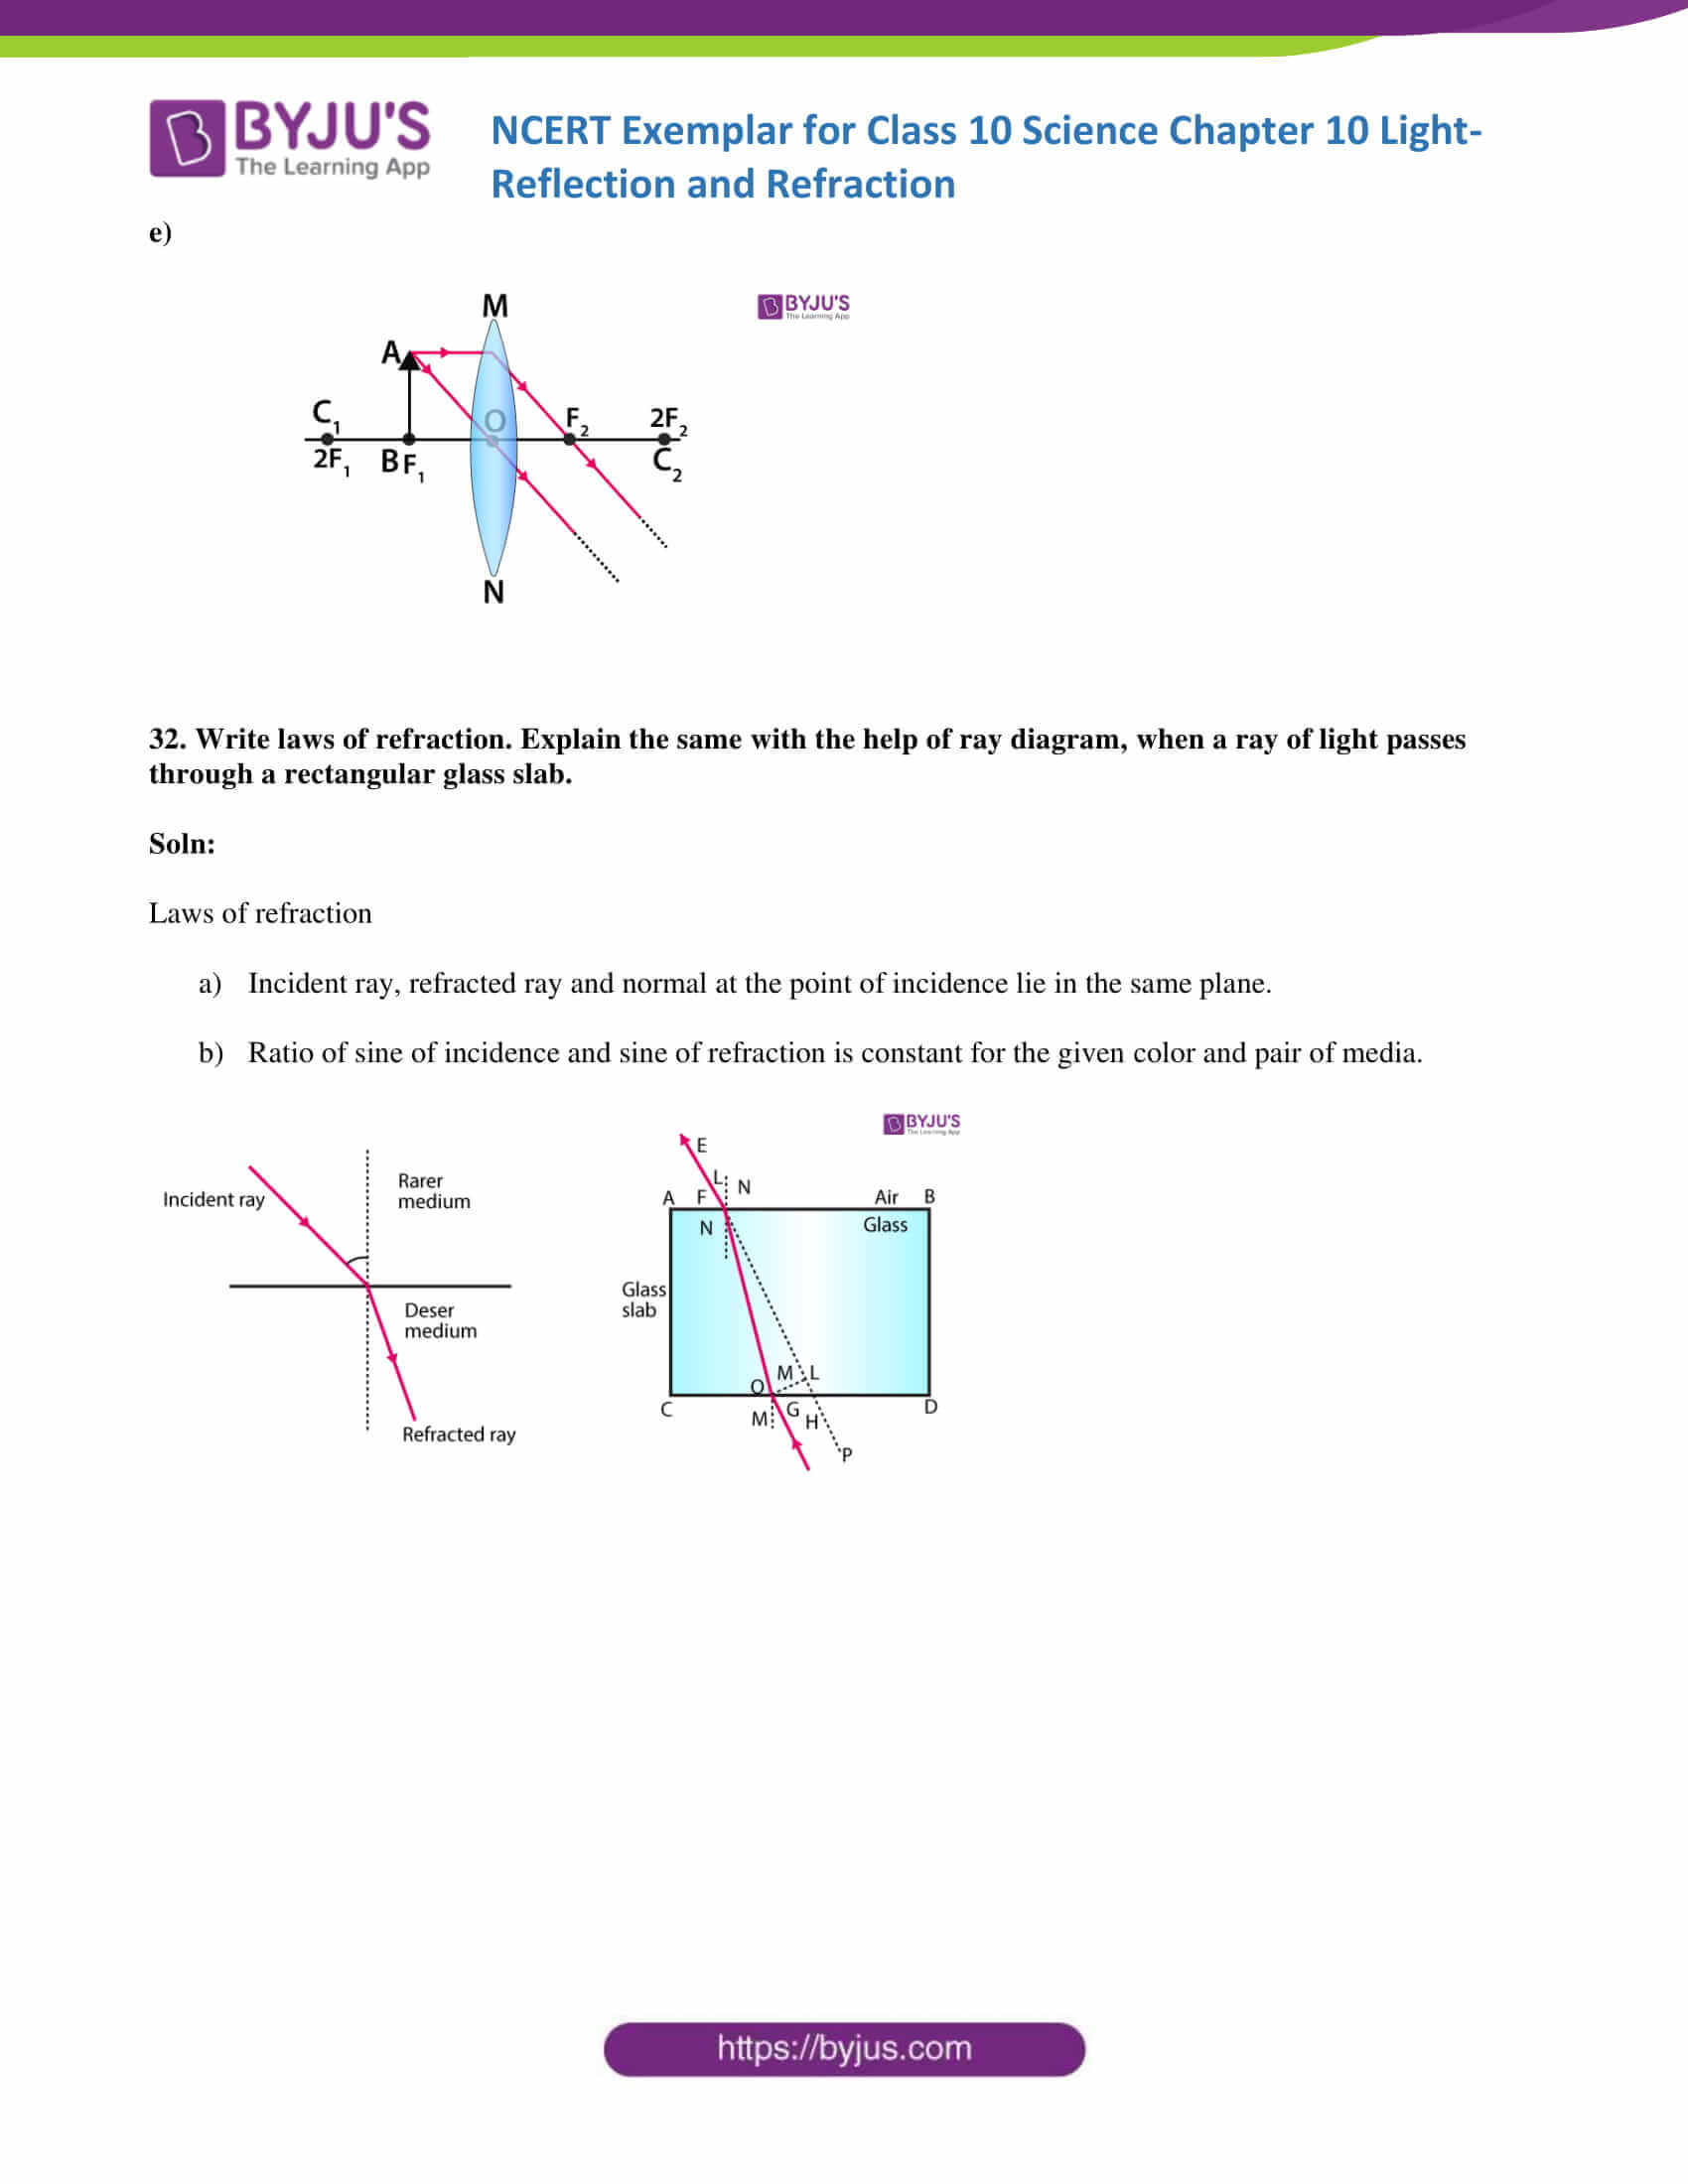 NCERT Exemplar solution class 10 science Chapter 10 part 18